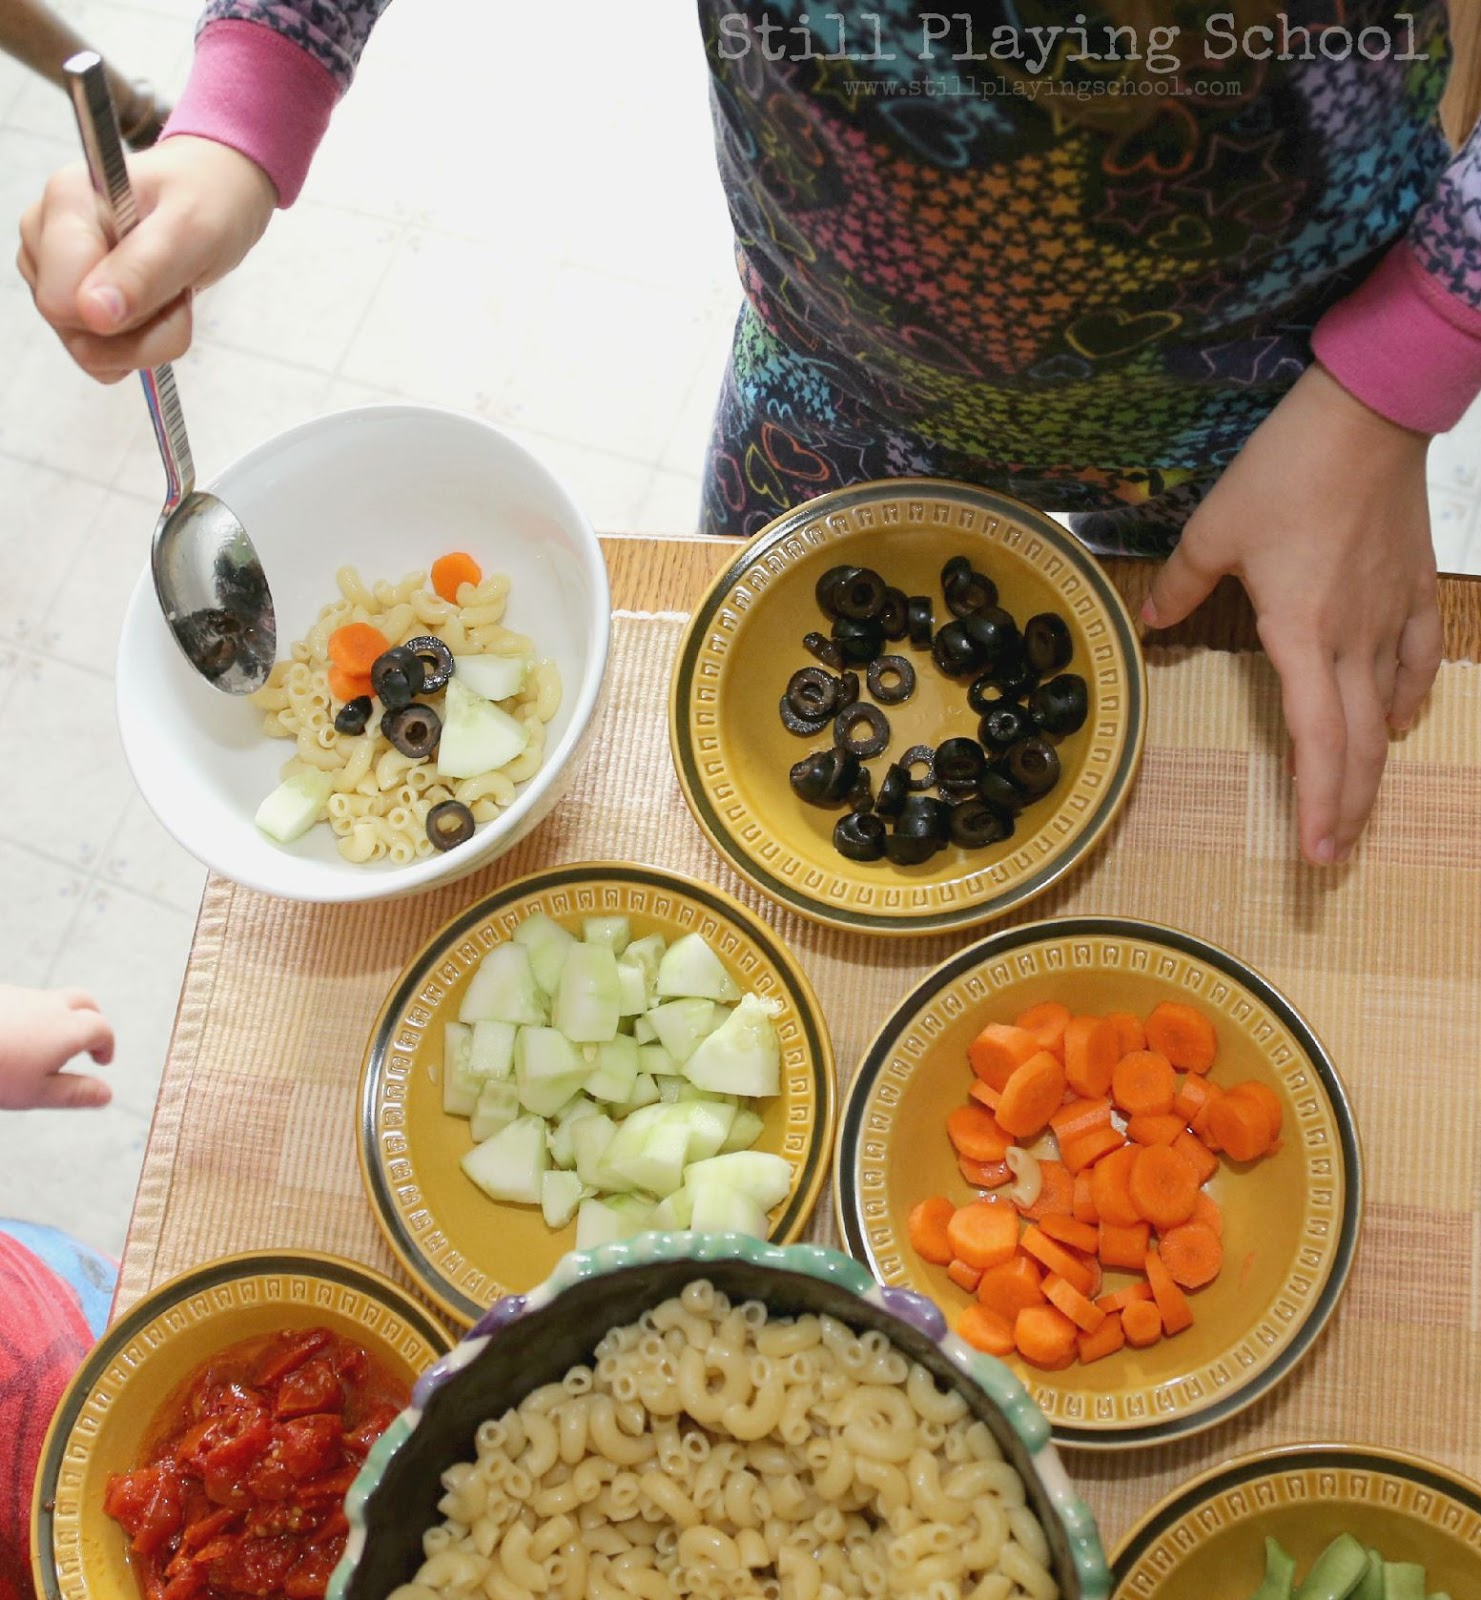 Make Your Own Pasta Salad Bar | Still Playing School